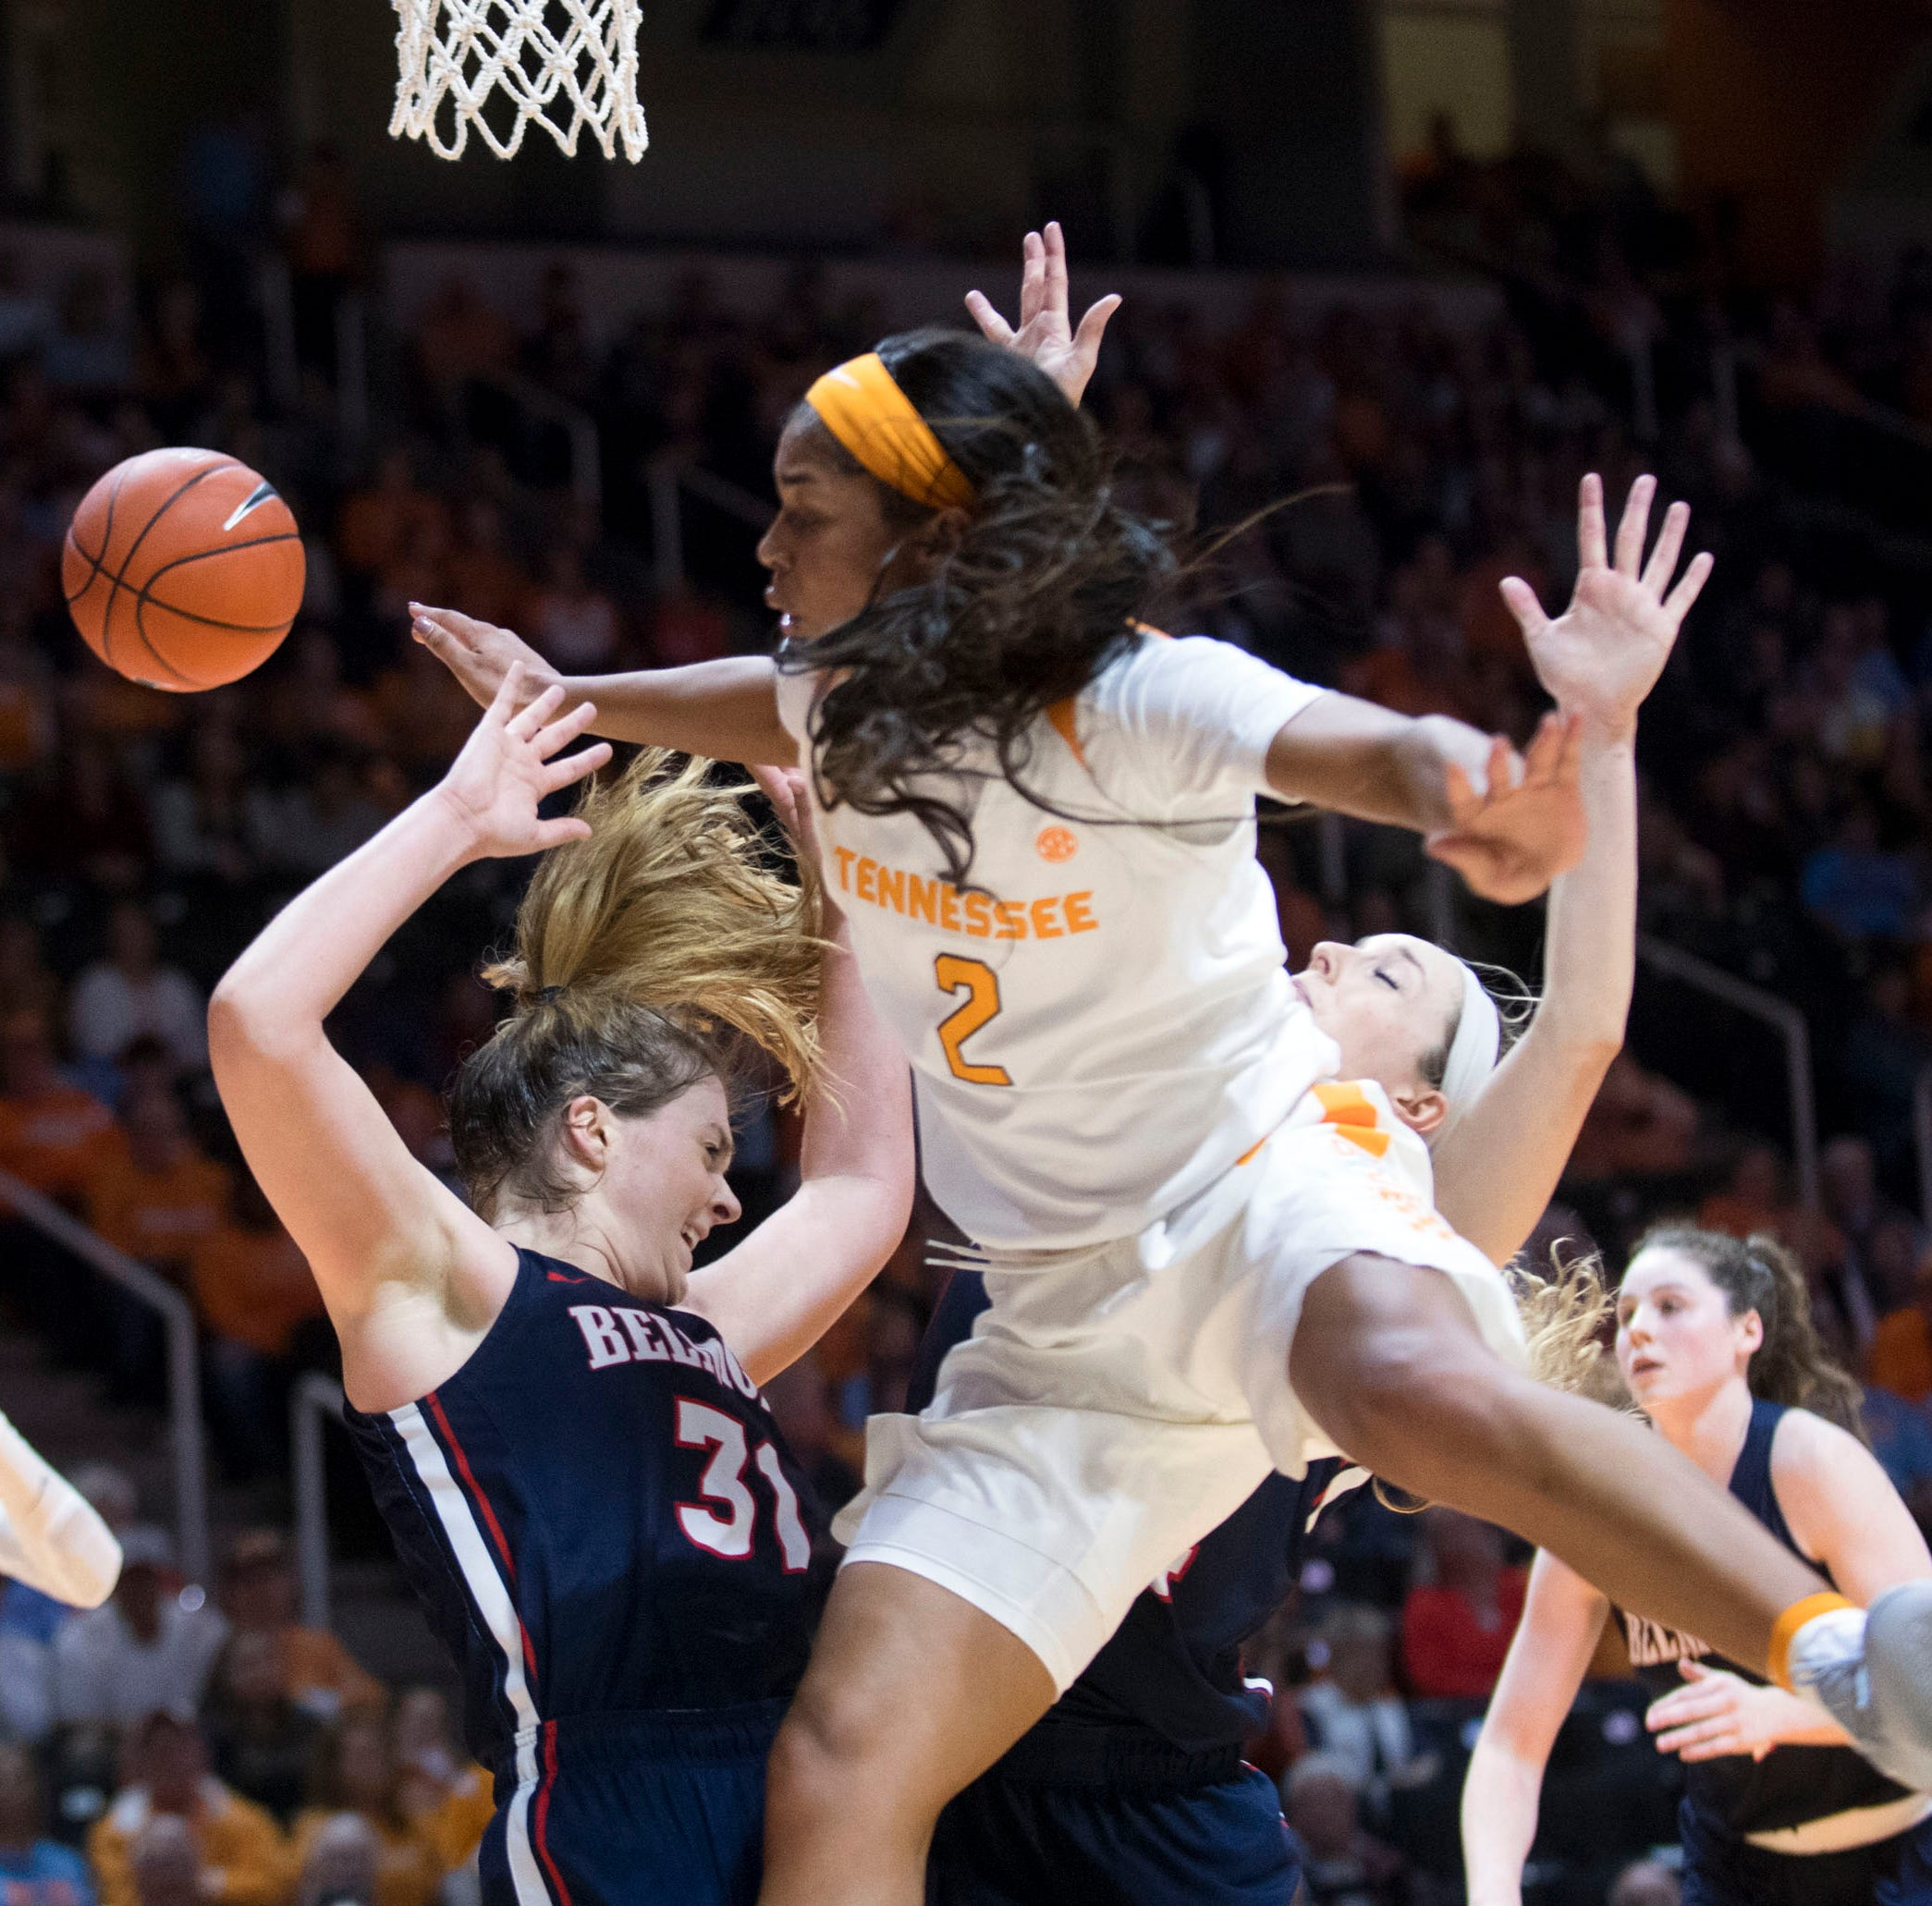 UT Lady Vols collapse against Alabama 86-65 as losing streaks grow